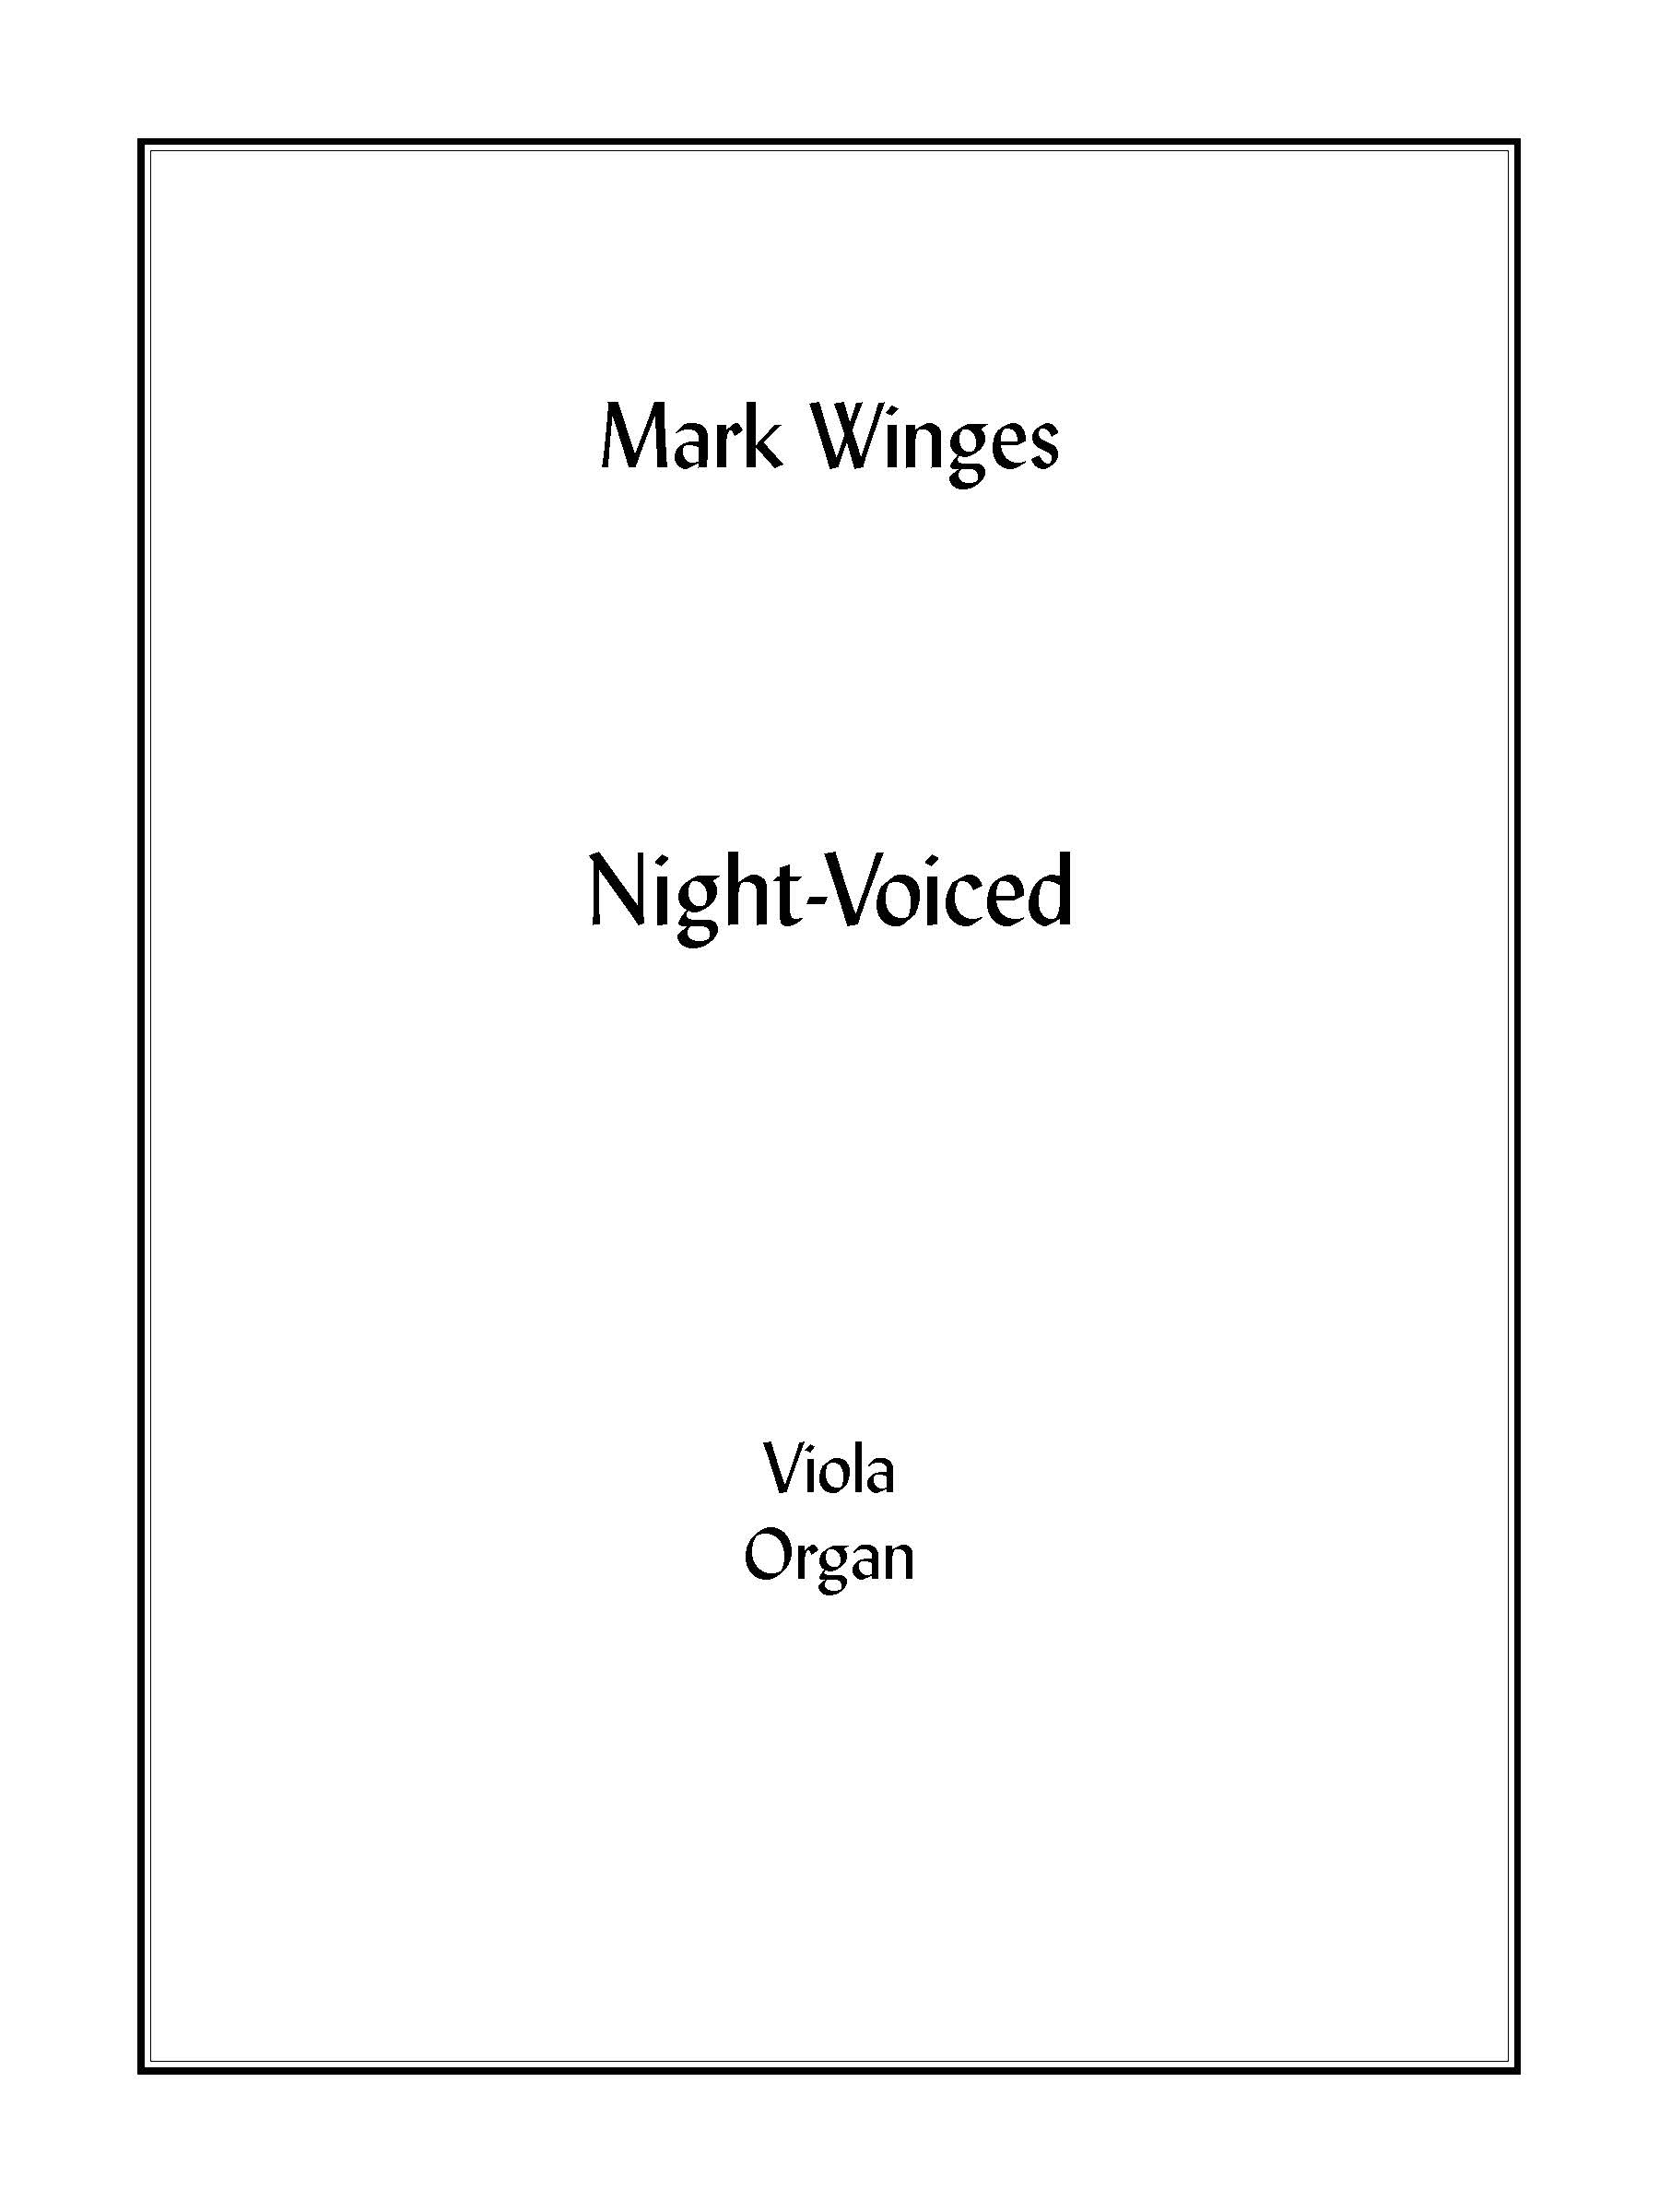 Night-Voiced (organ version) for Viola & Organ